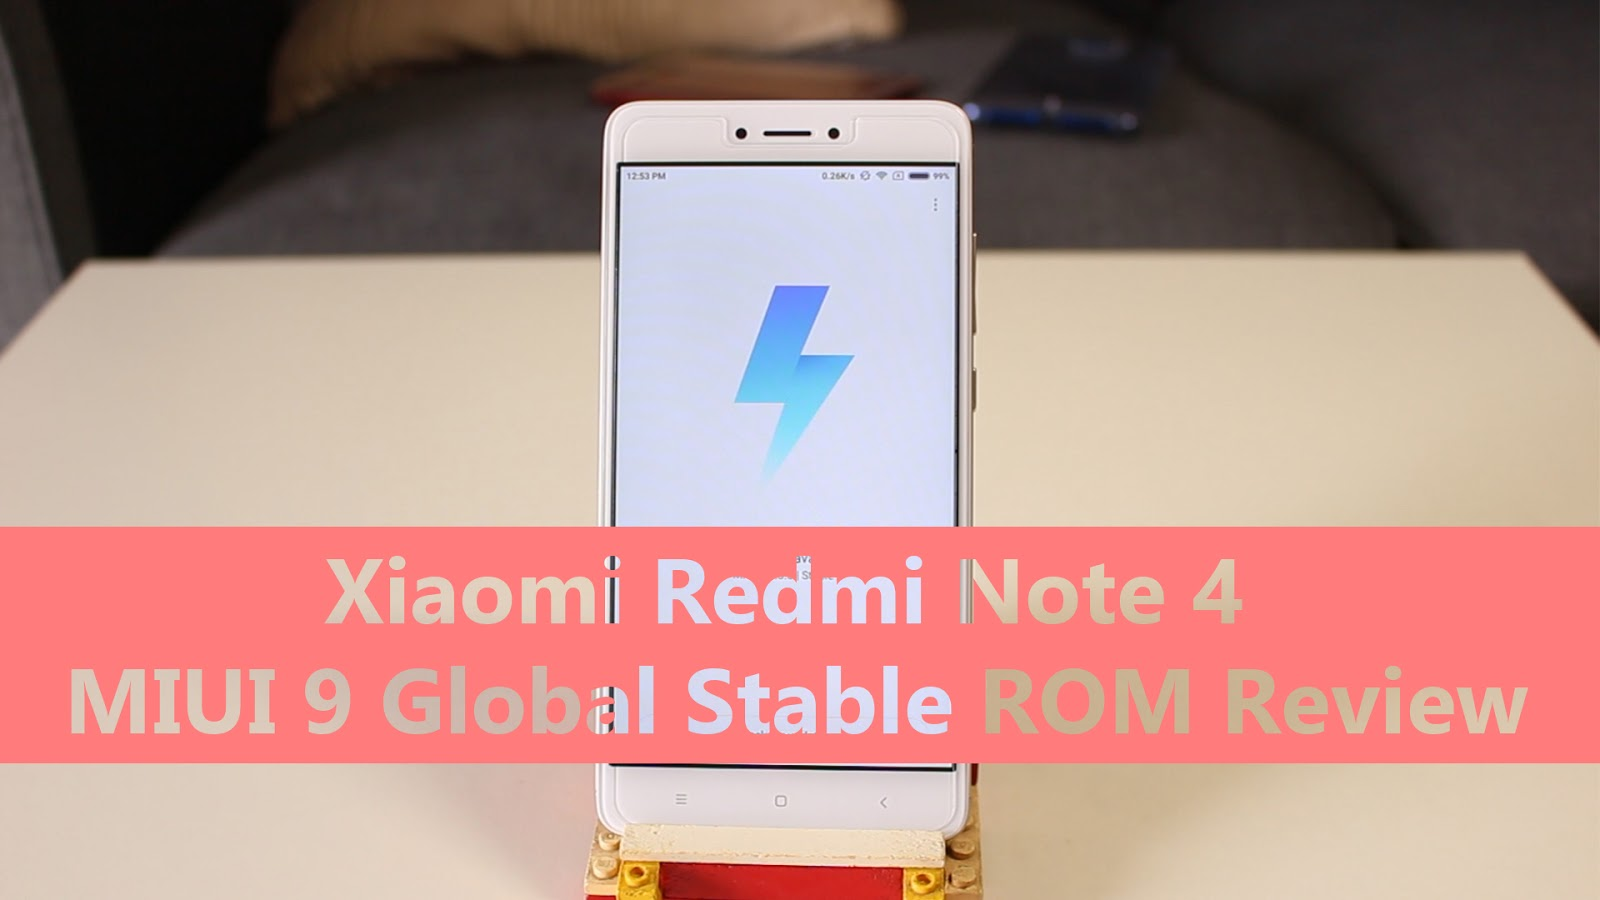 Xiaomi Redmi Note 4 MIUI 9 Global Stable ROM Review | Mister